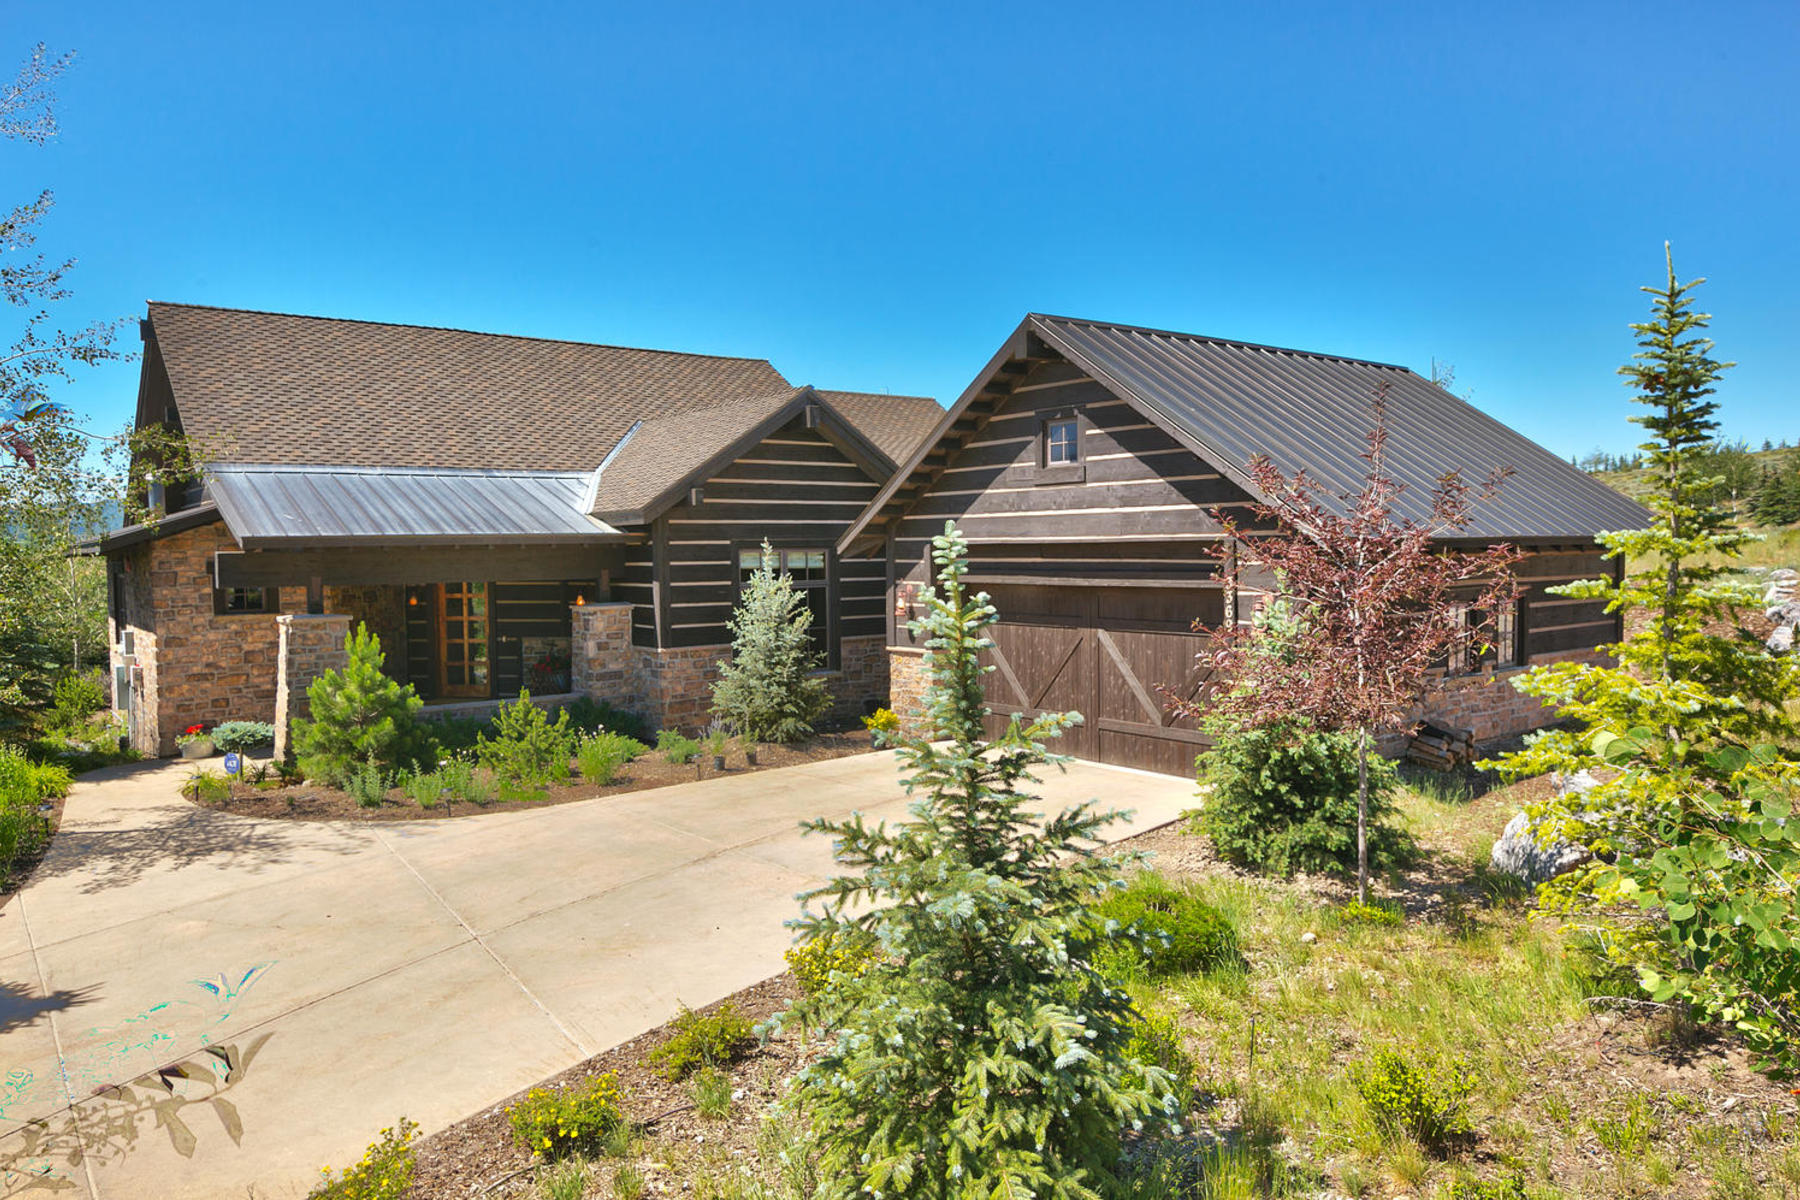 Single Family Home for Sale at Stunning Cabin with Golf Course Views 3369 Tatanka Trail Park City, Utah 84098 United States